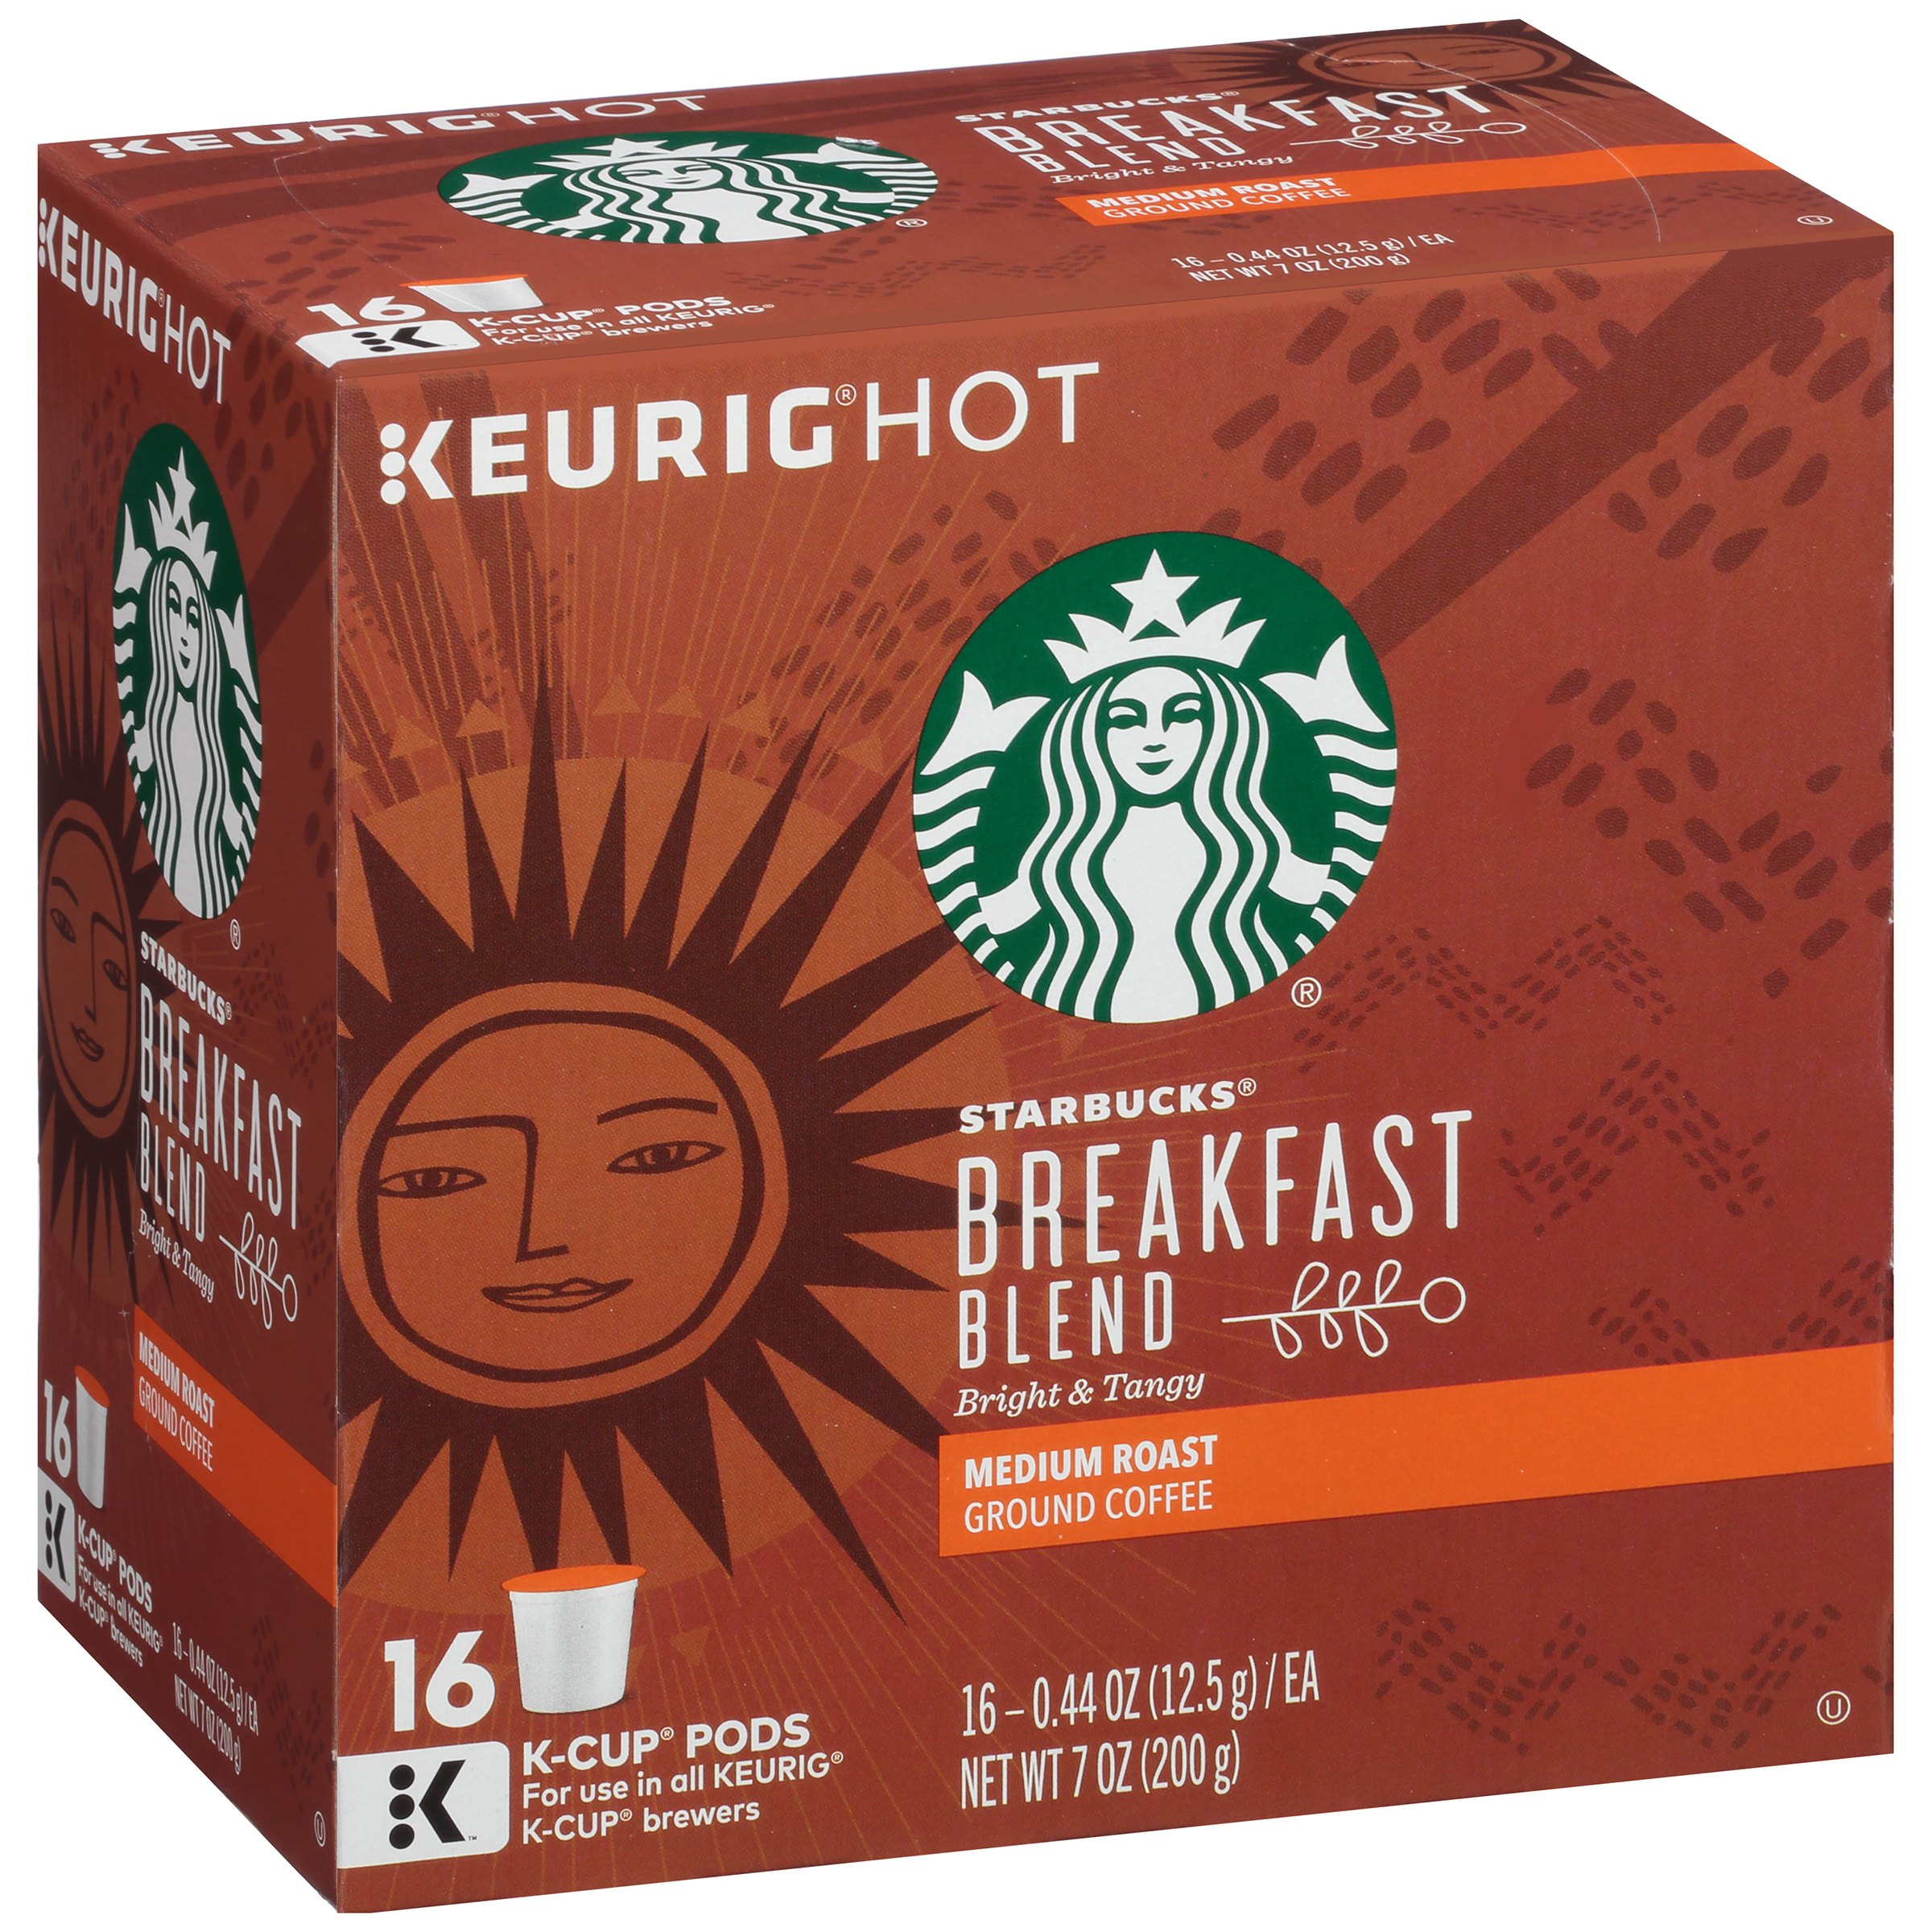 Starbucks Keurig Hot Breakfast Blend Medium Roast Ground Coffee, 0.44 oz, 16 count